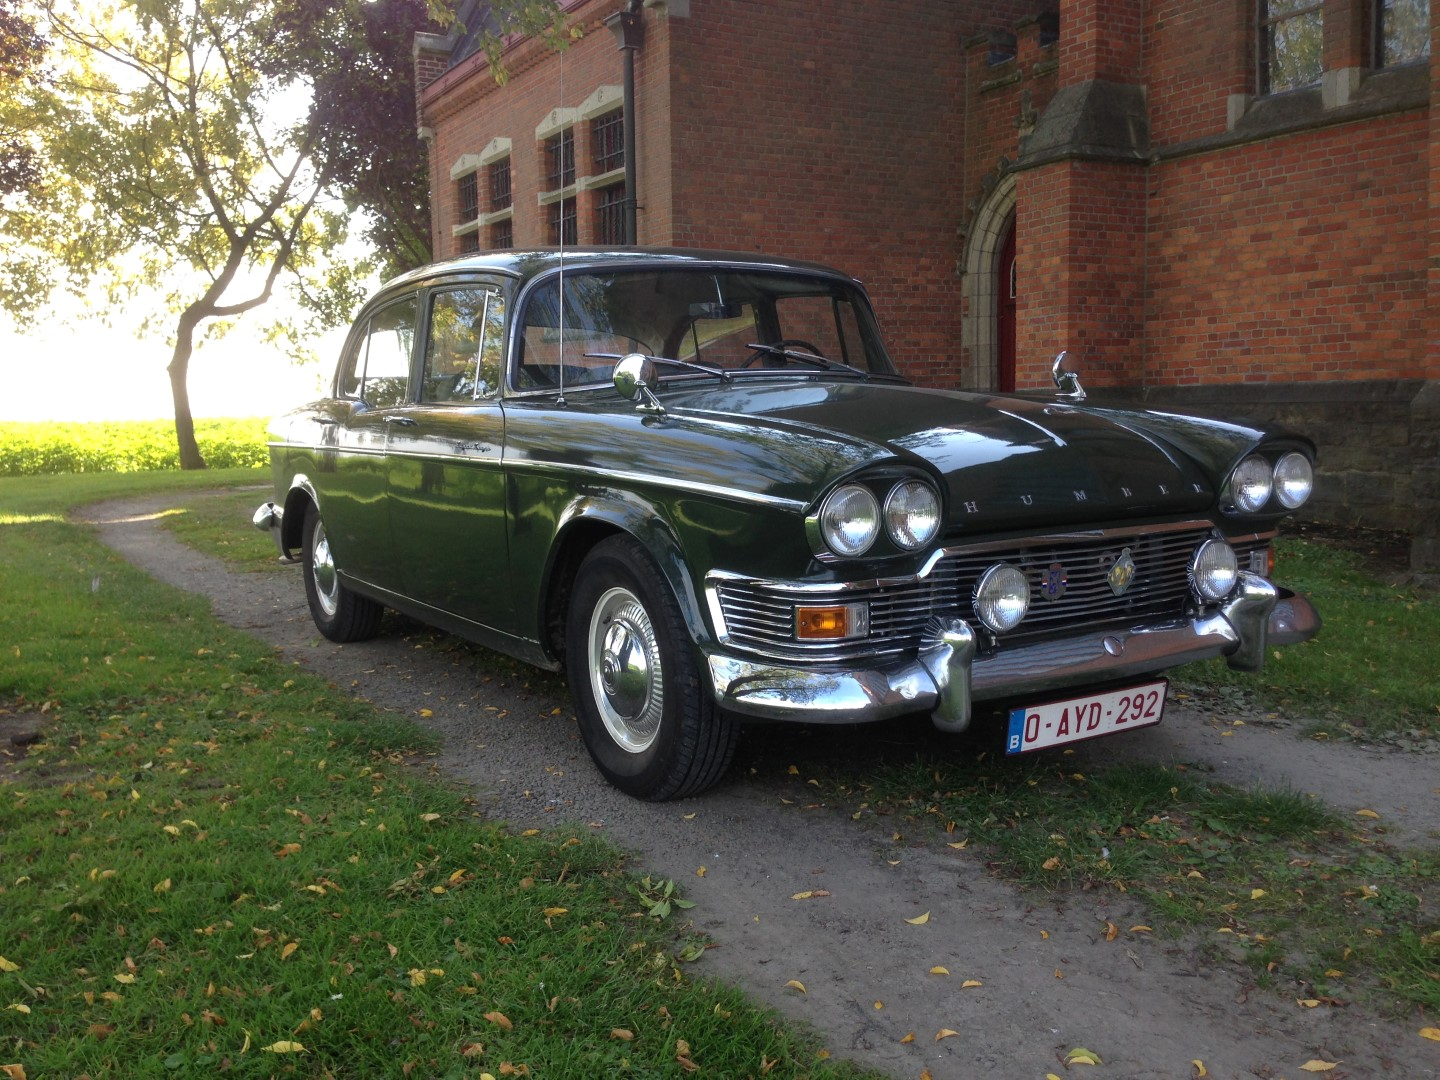 Buy this Humber Super snipe mark IV   at Legendary Classics